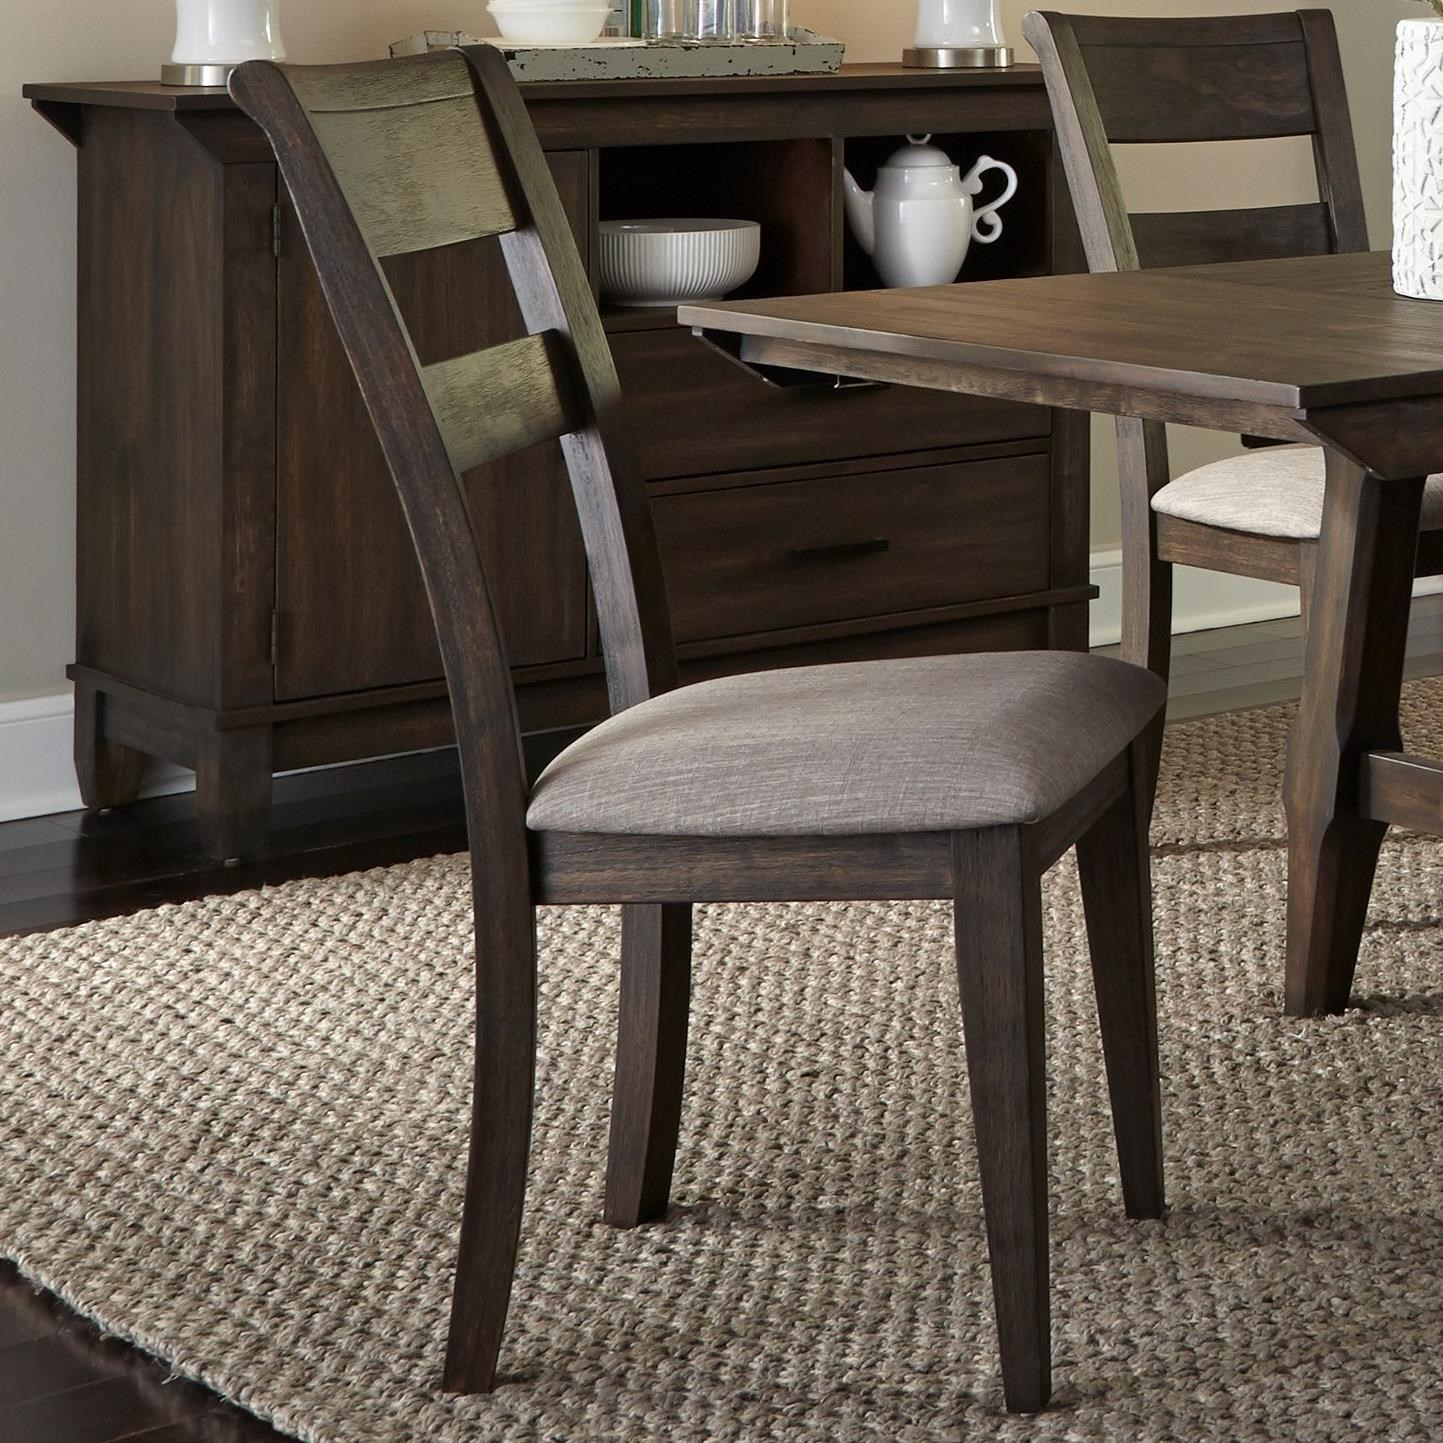 Double Bridge Splat Back Side Chair by Liberty Furniture at Lapeer Furniture & Mattress Center